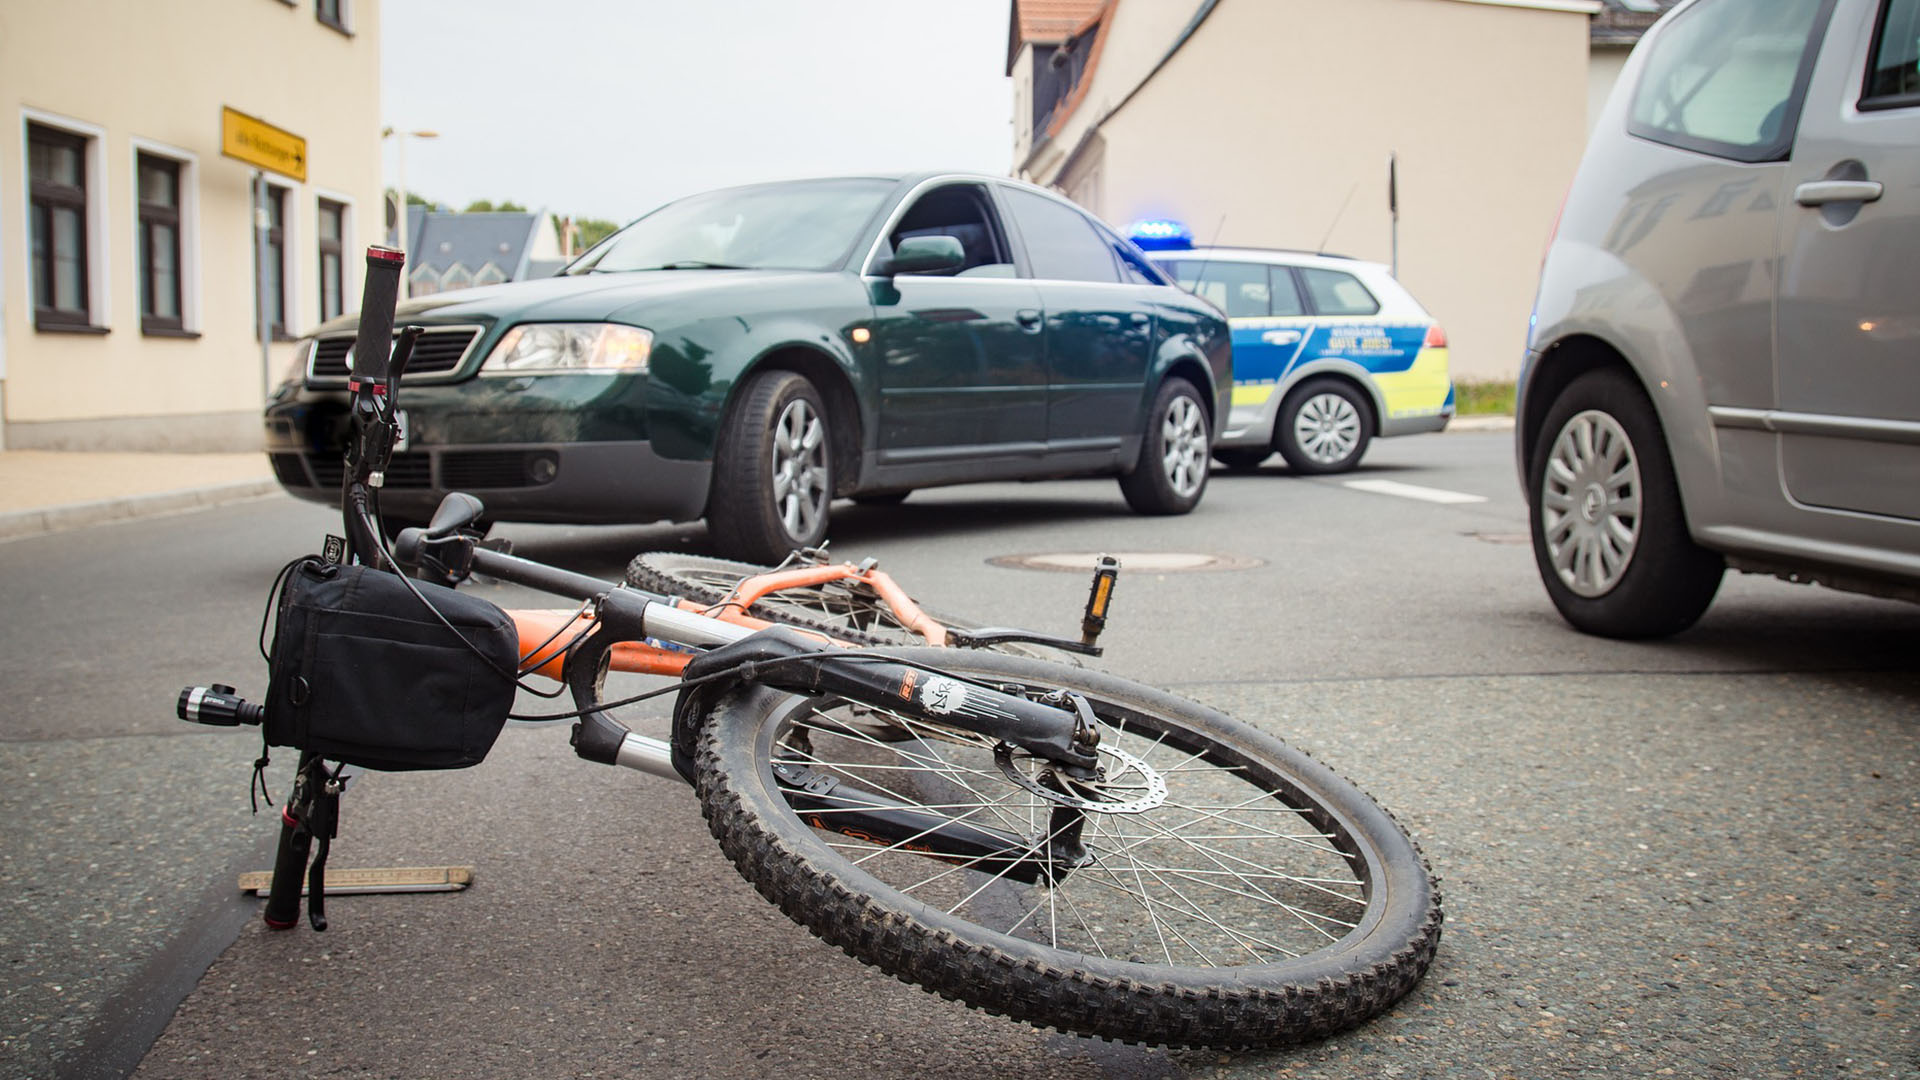 bicycle lying on road with vehicles in background